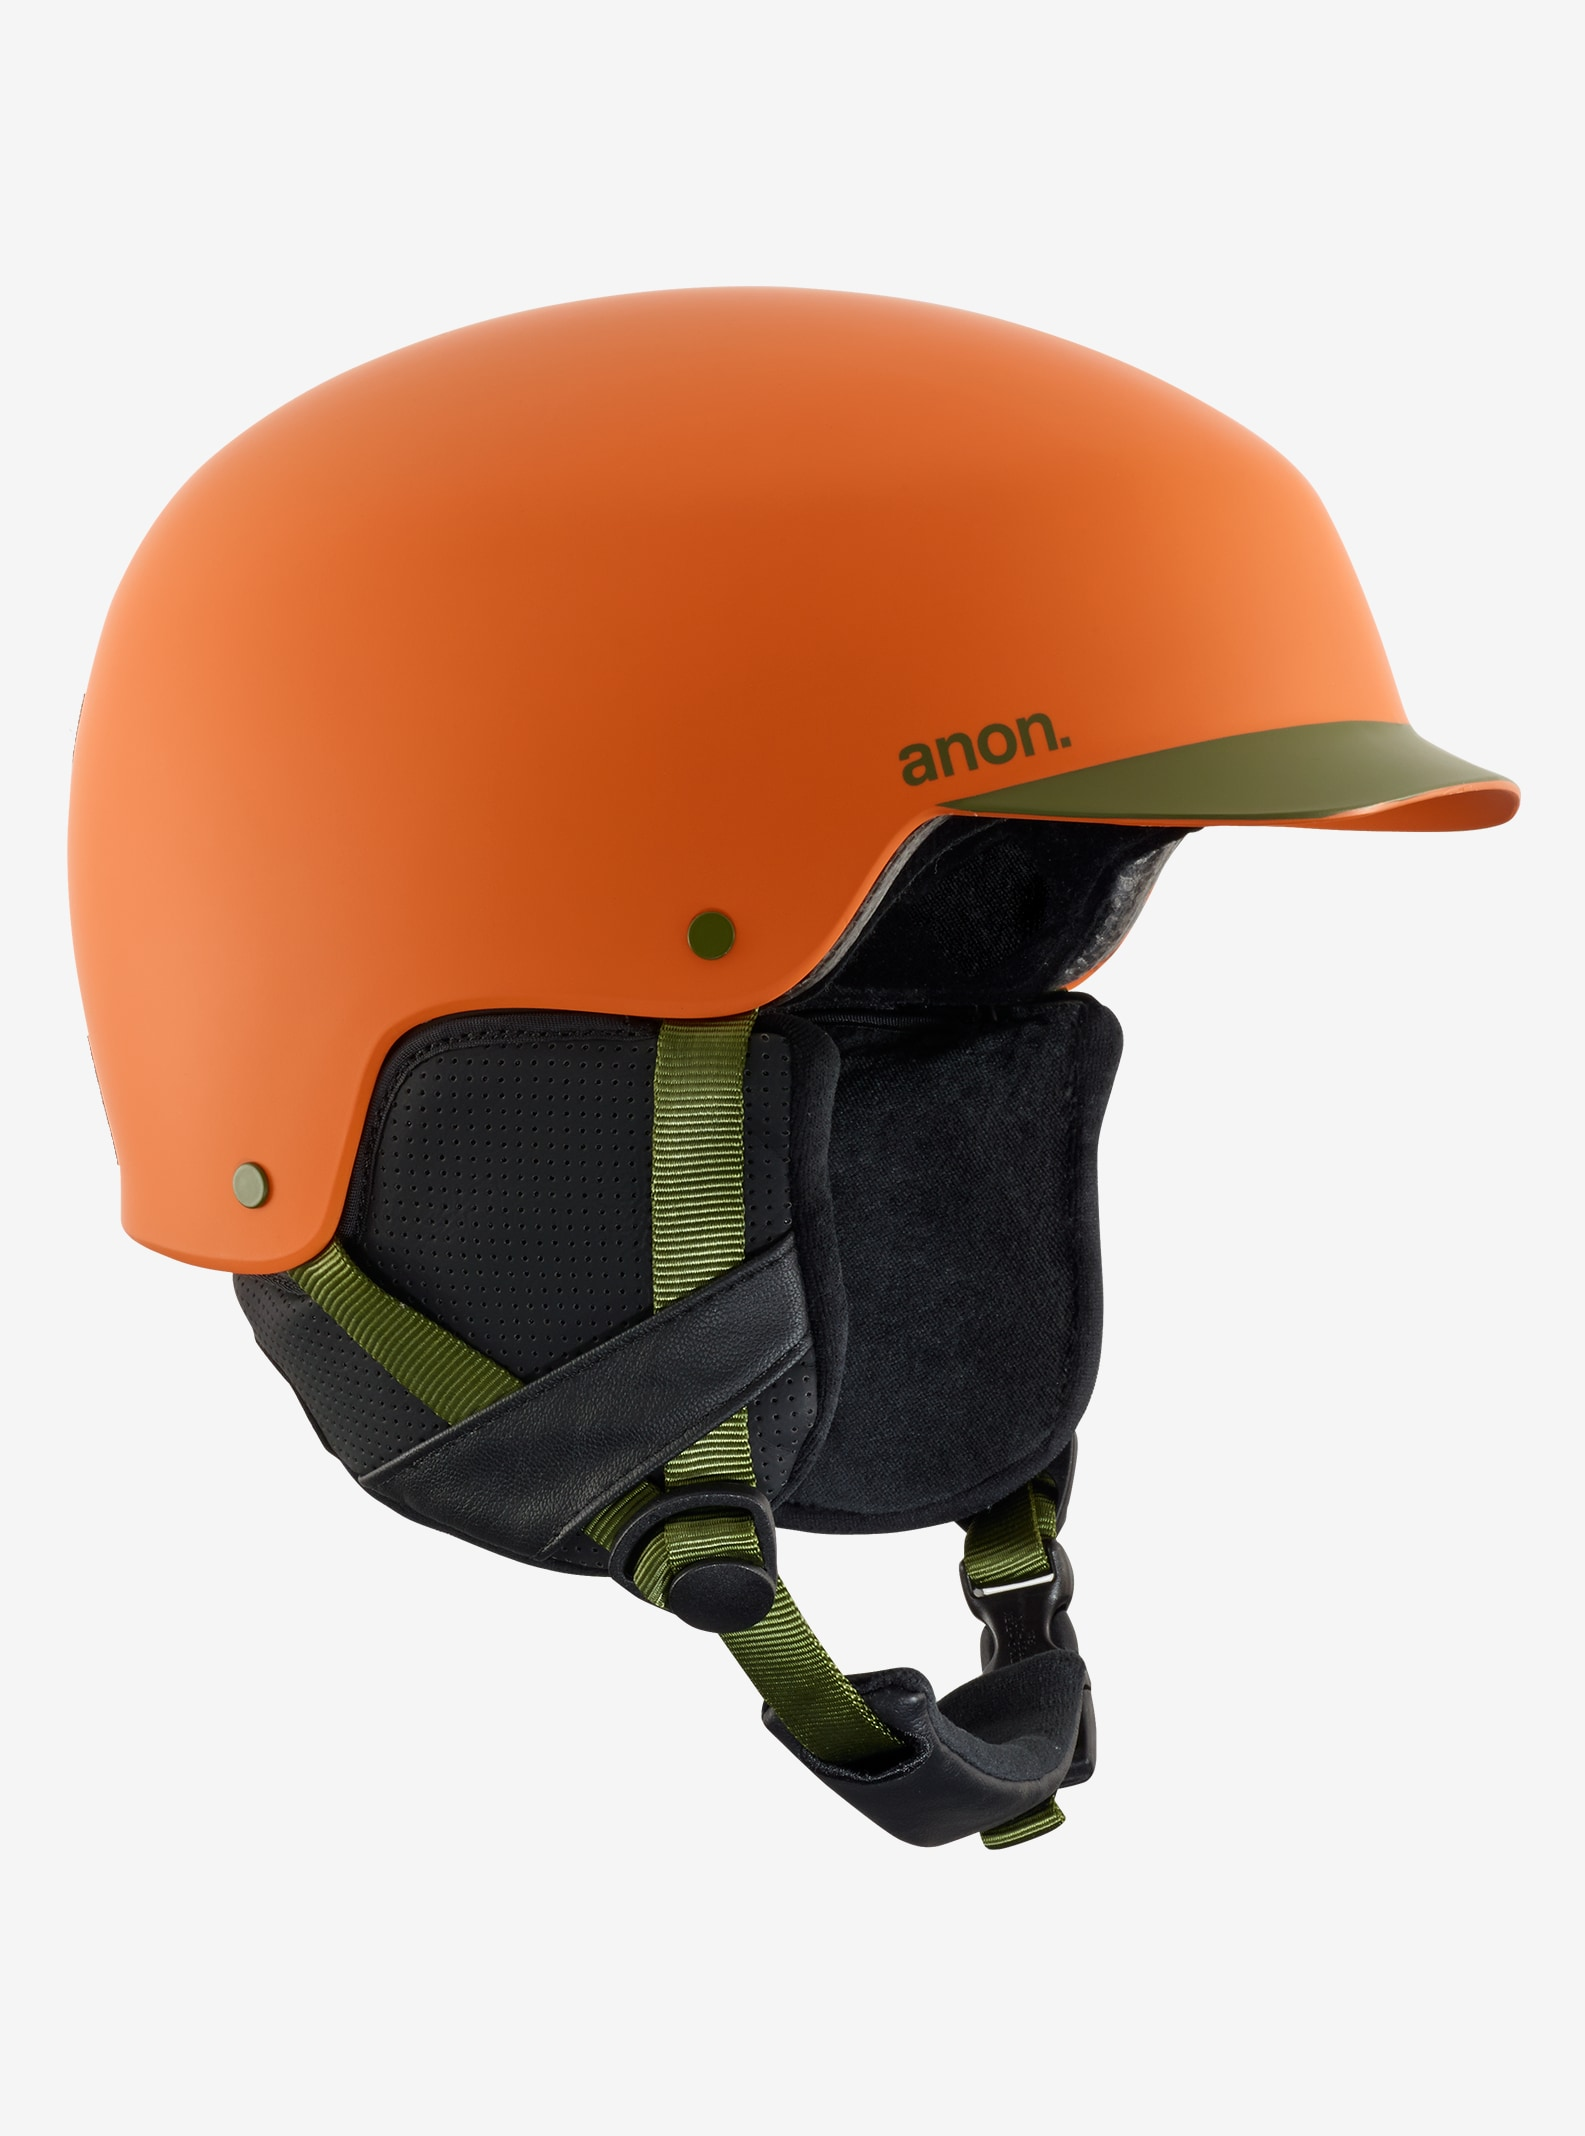 Men's Anon Blitz Helmet shown in Orange